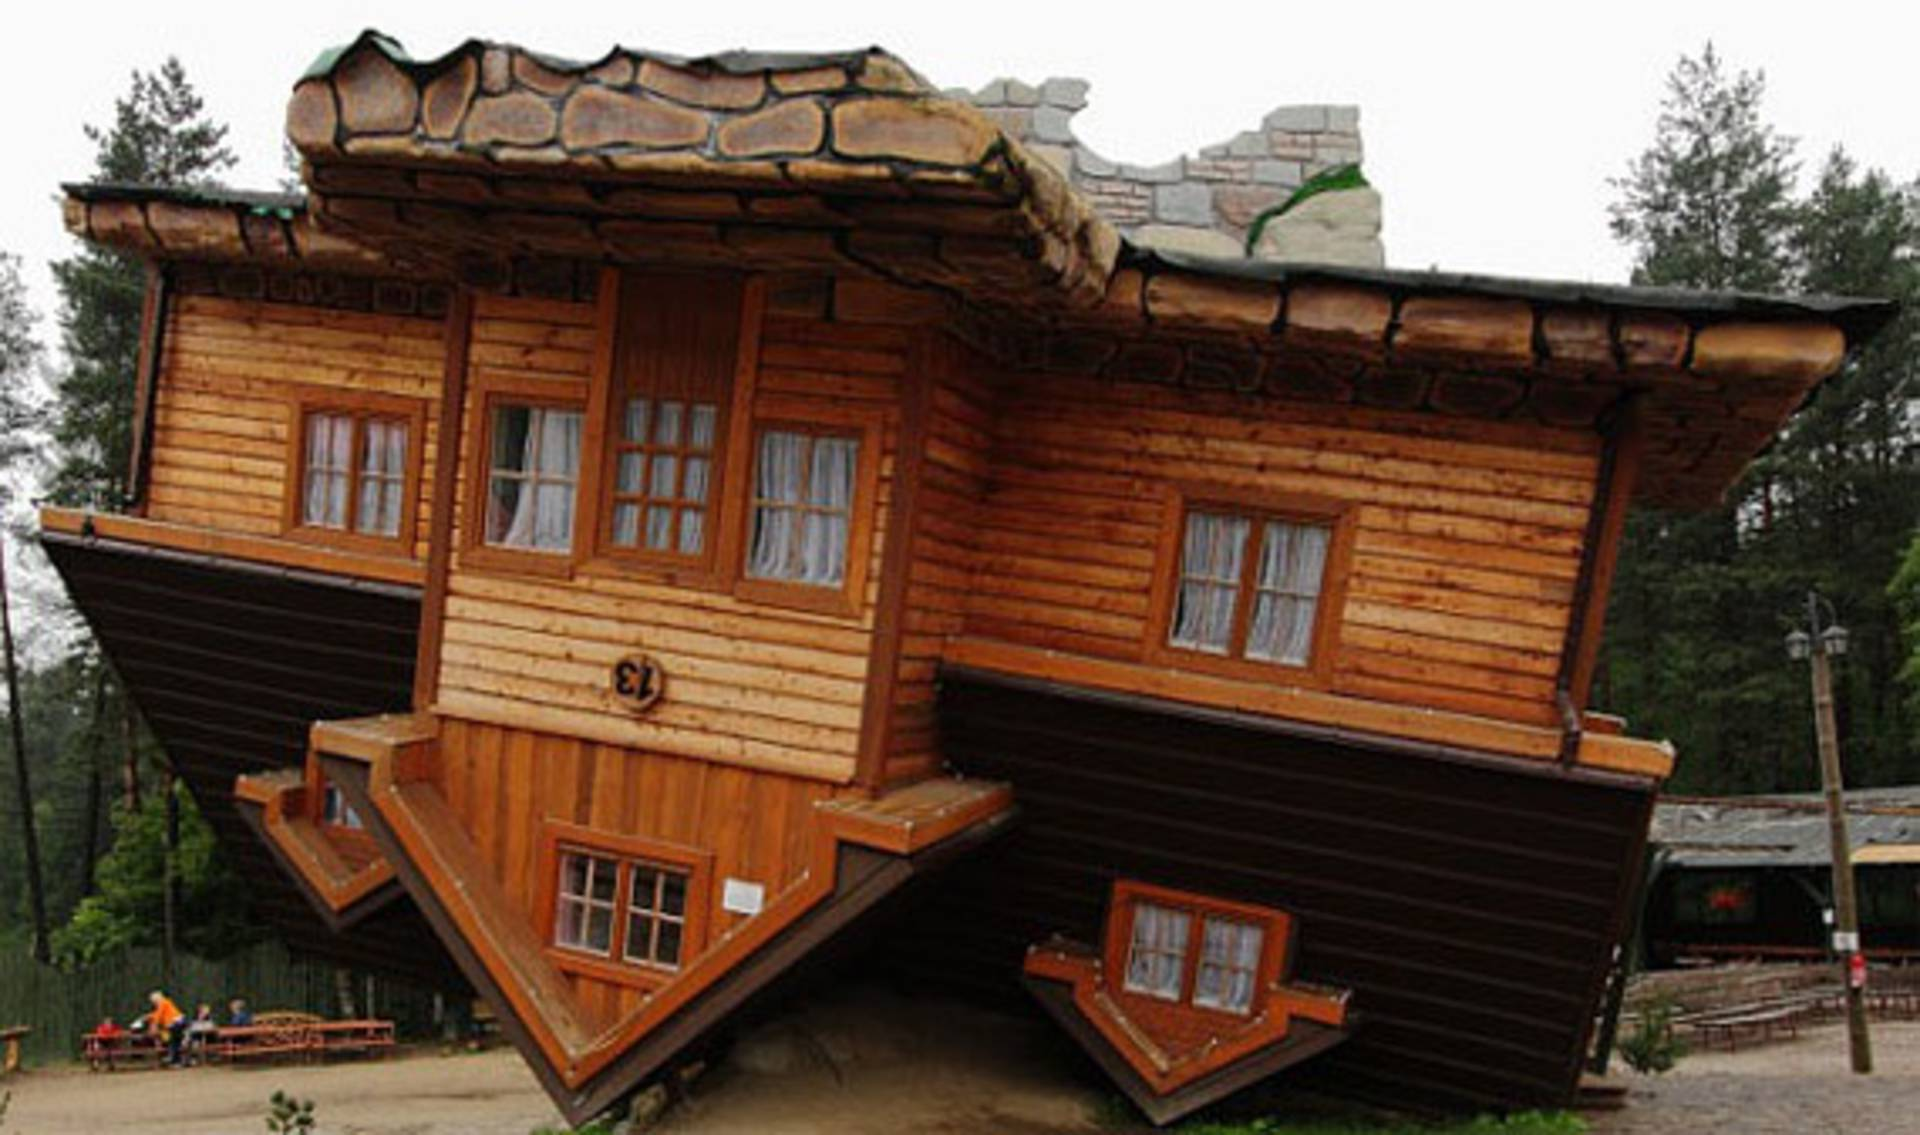 Unusual Projects: Upside Down Houses - Home Reviews